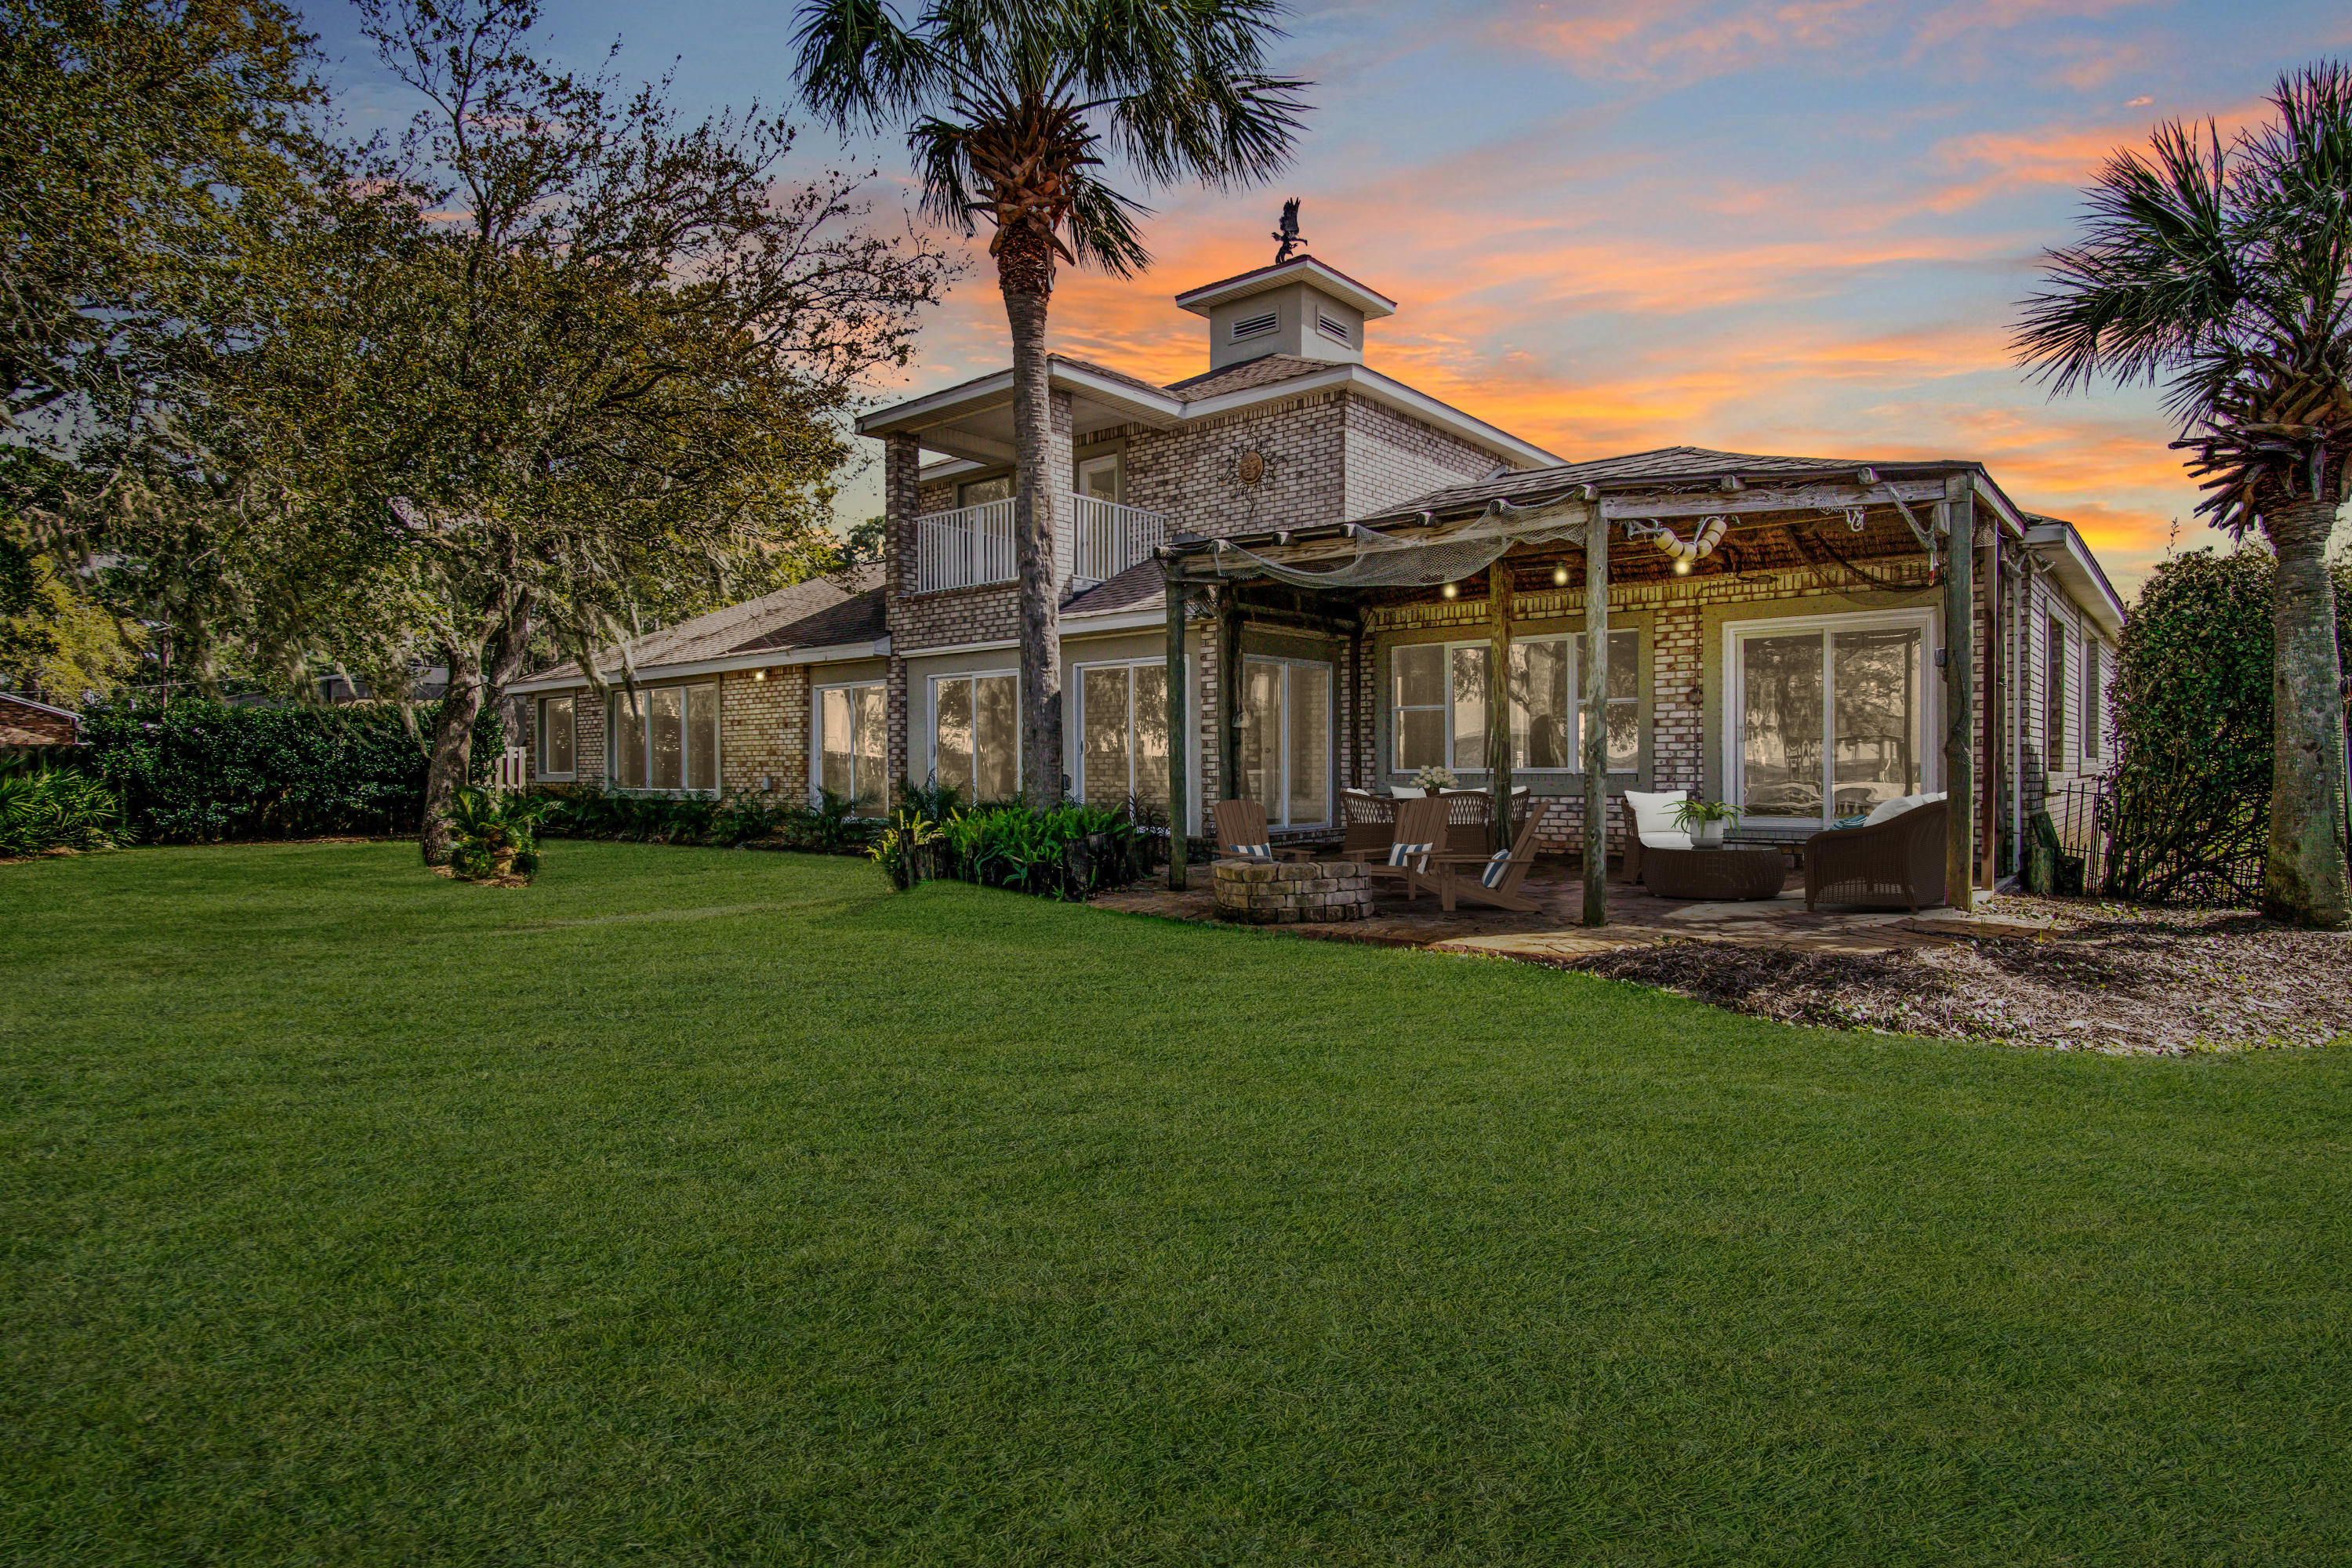 This immaculate, spacious home with majestic oaks dressed in Spanish moss with a gorgeous waterfront